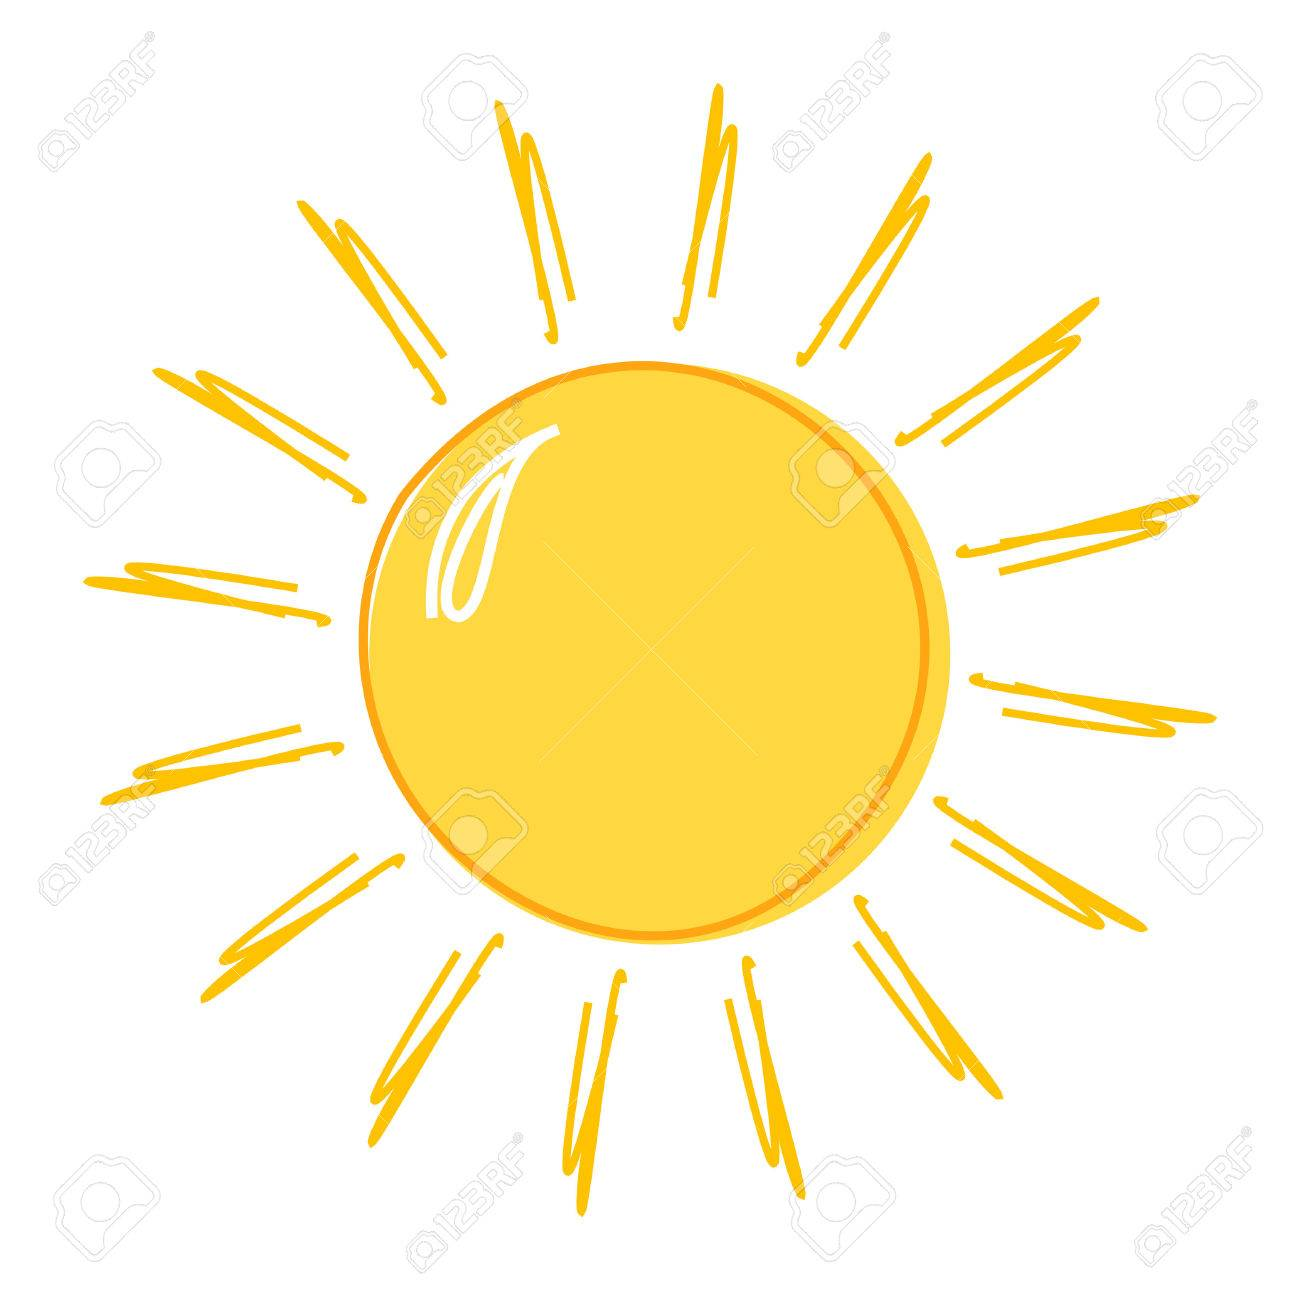 Uncategorized Sun Drawing doodle sun drawing icon vector illustration royalty free cliparts stock 68893821